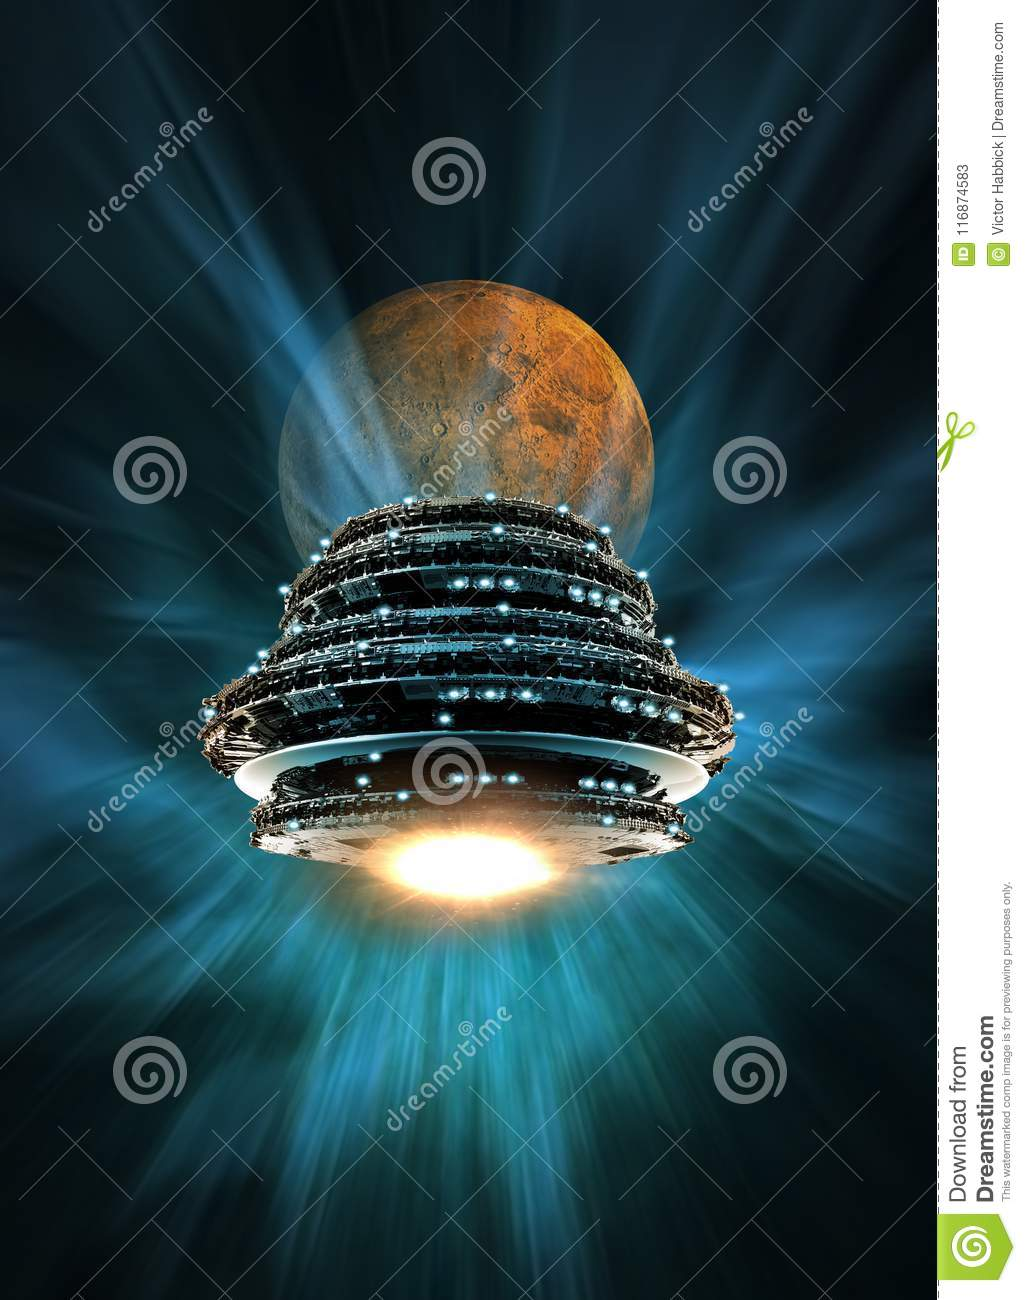 Large UFO and moon